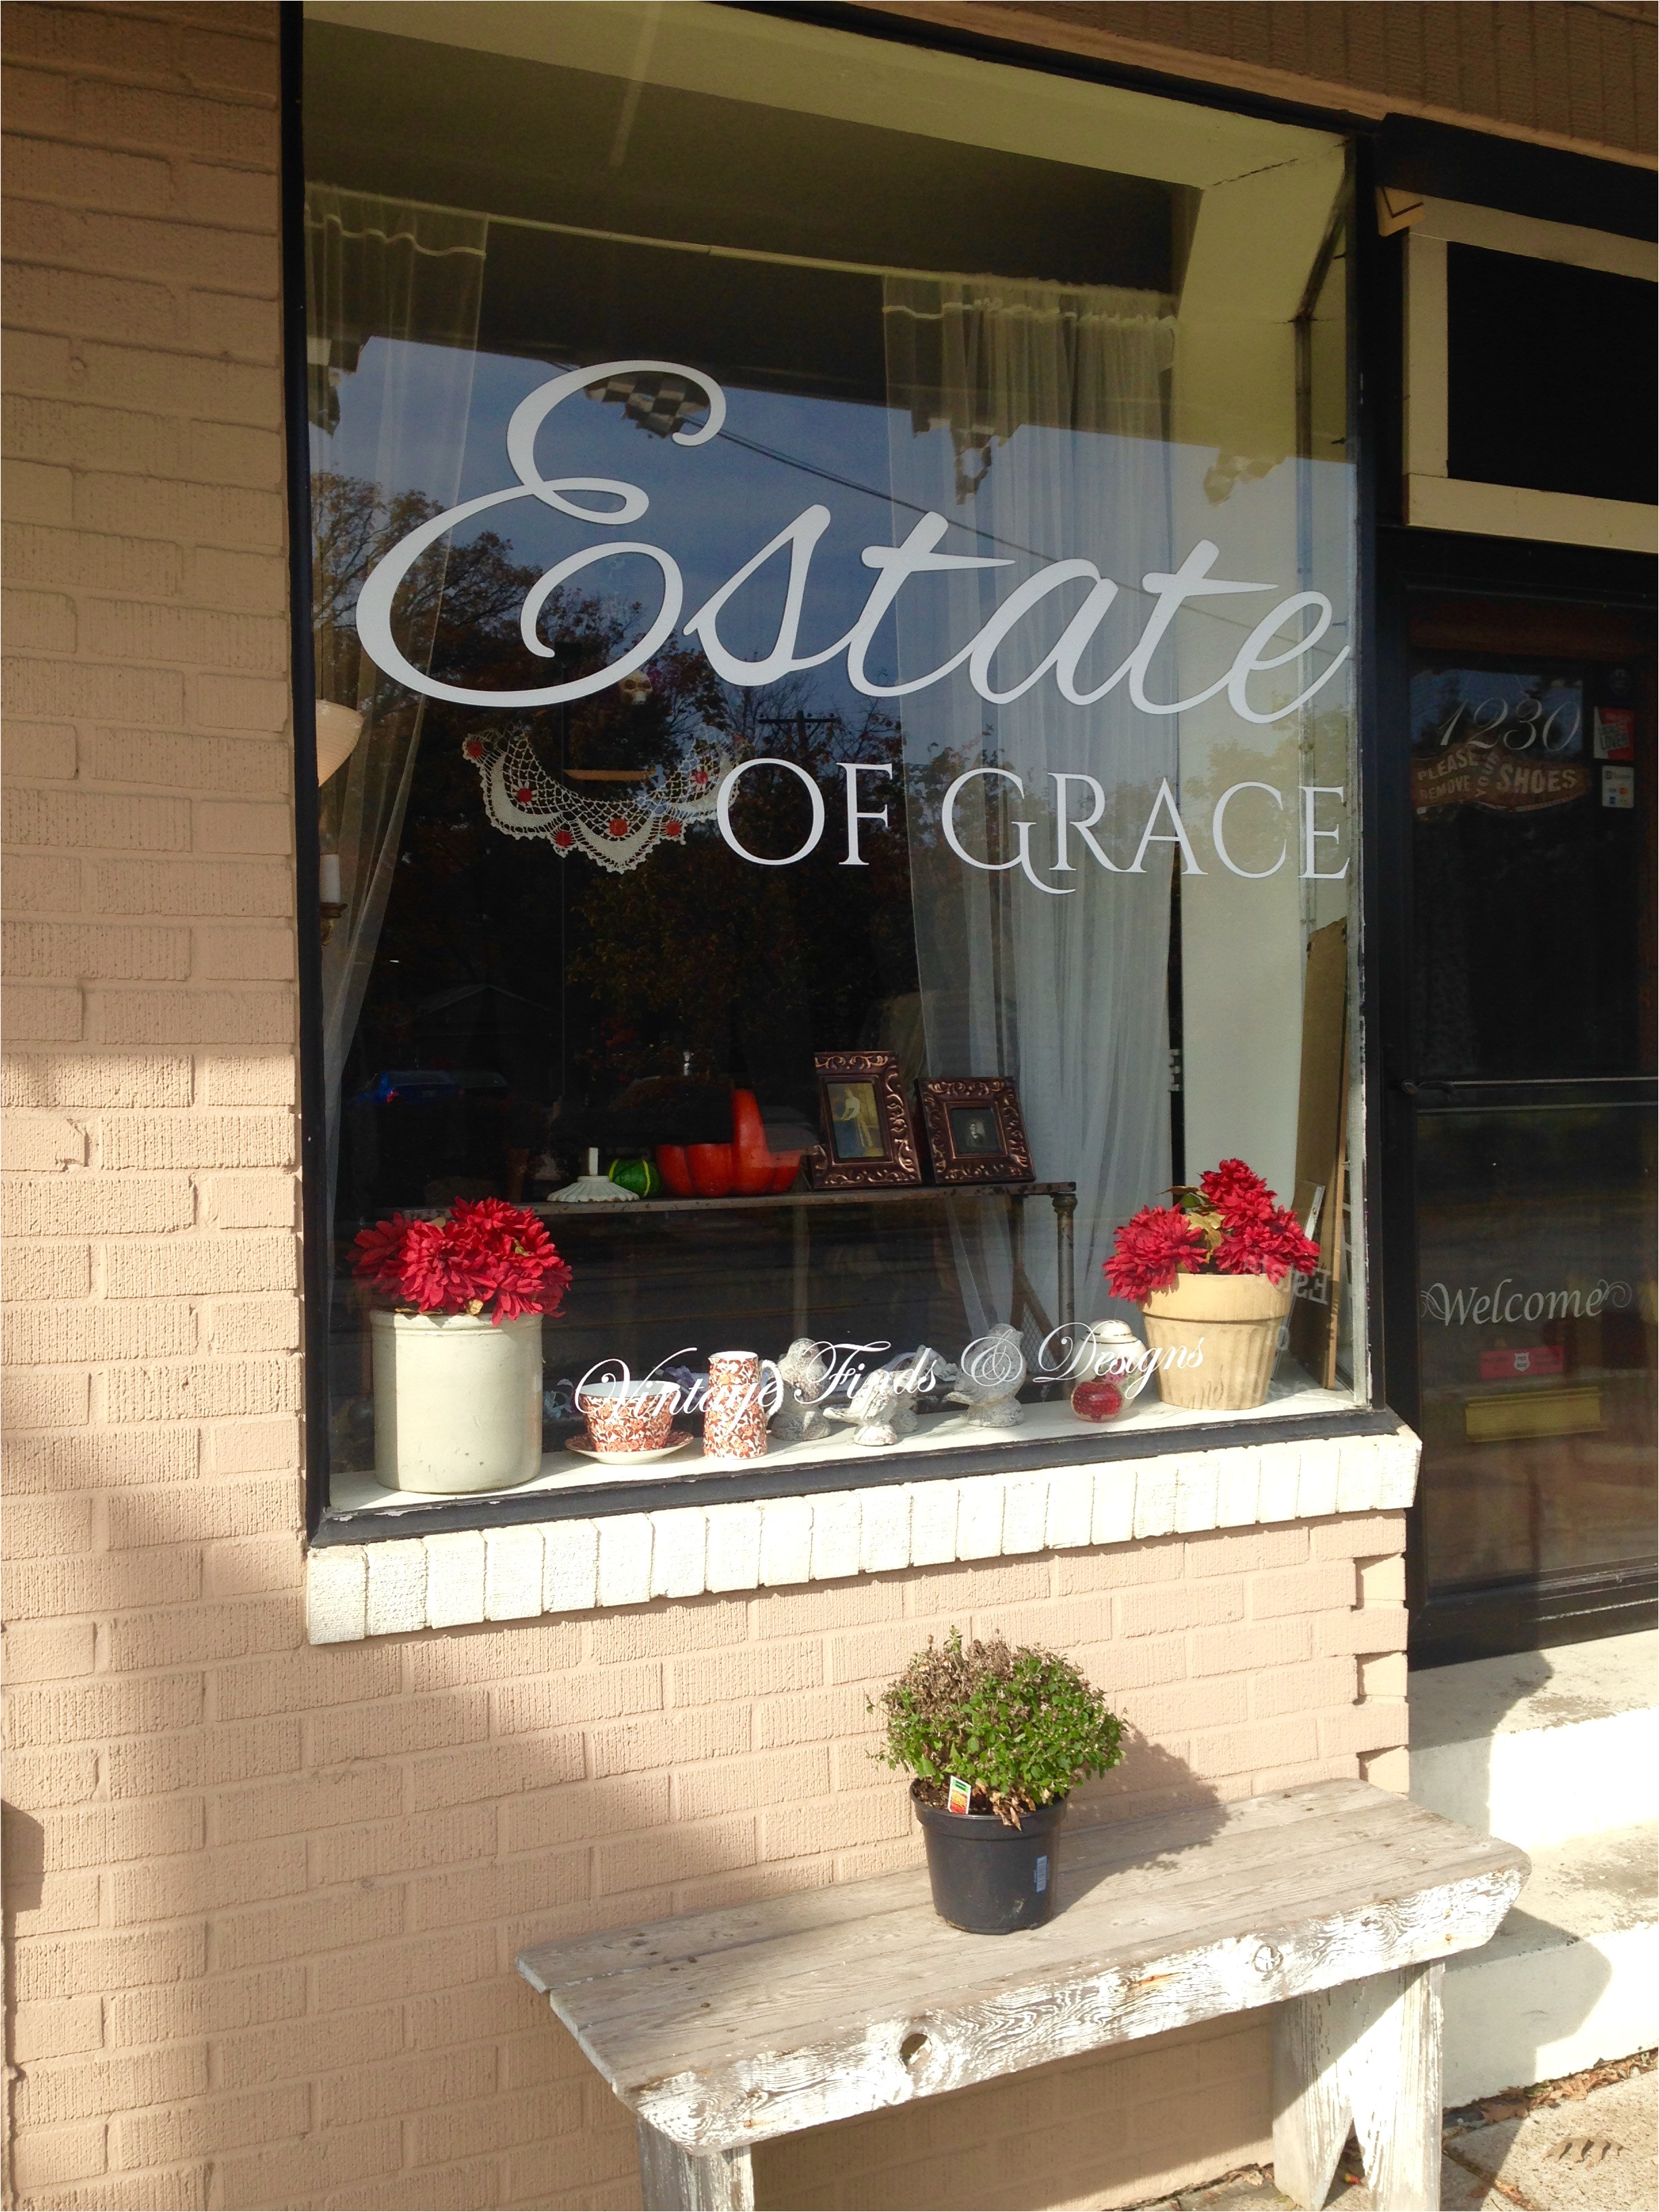 estate of grace where the antique shop is a work of art